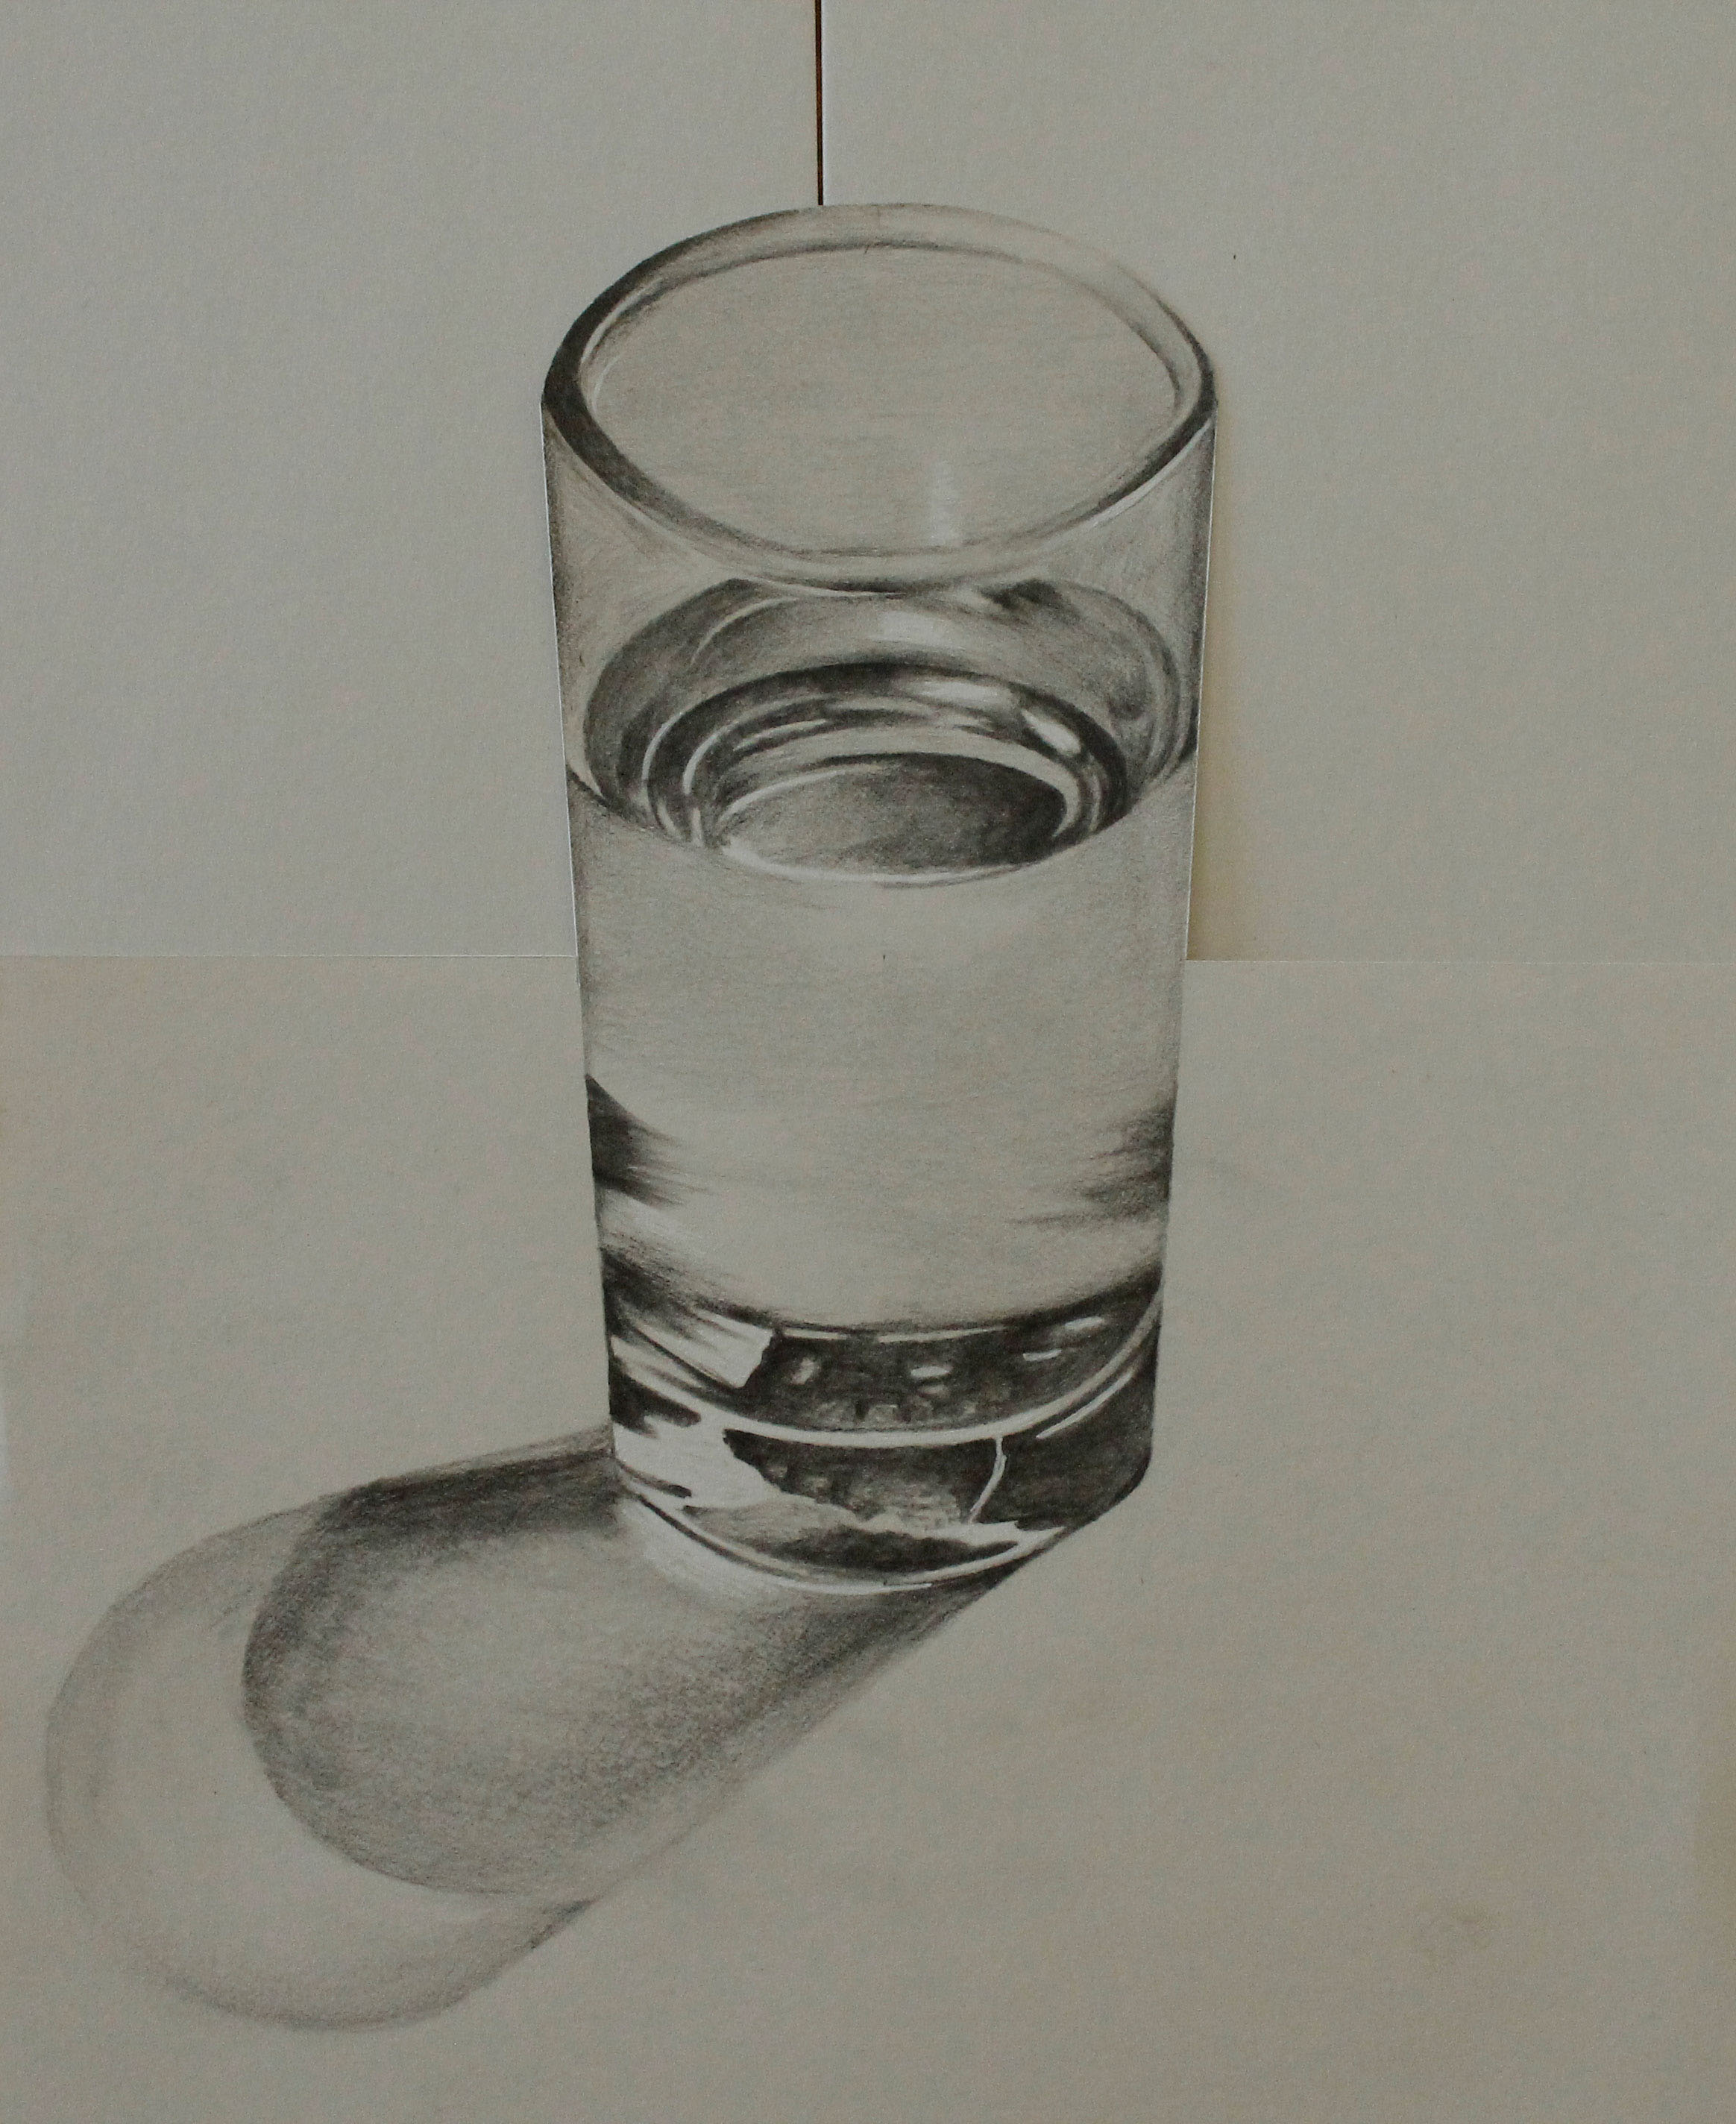 3d sketch of a glass using pencil on paper